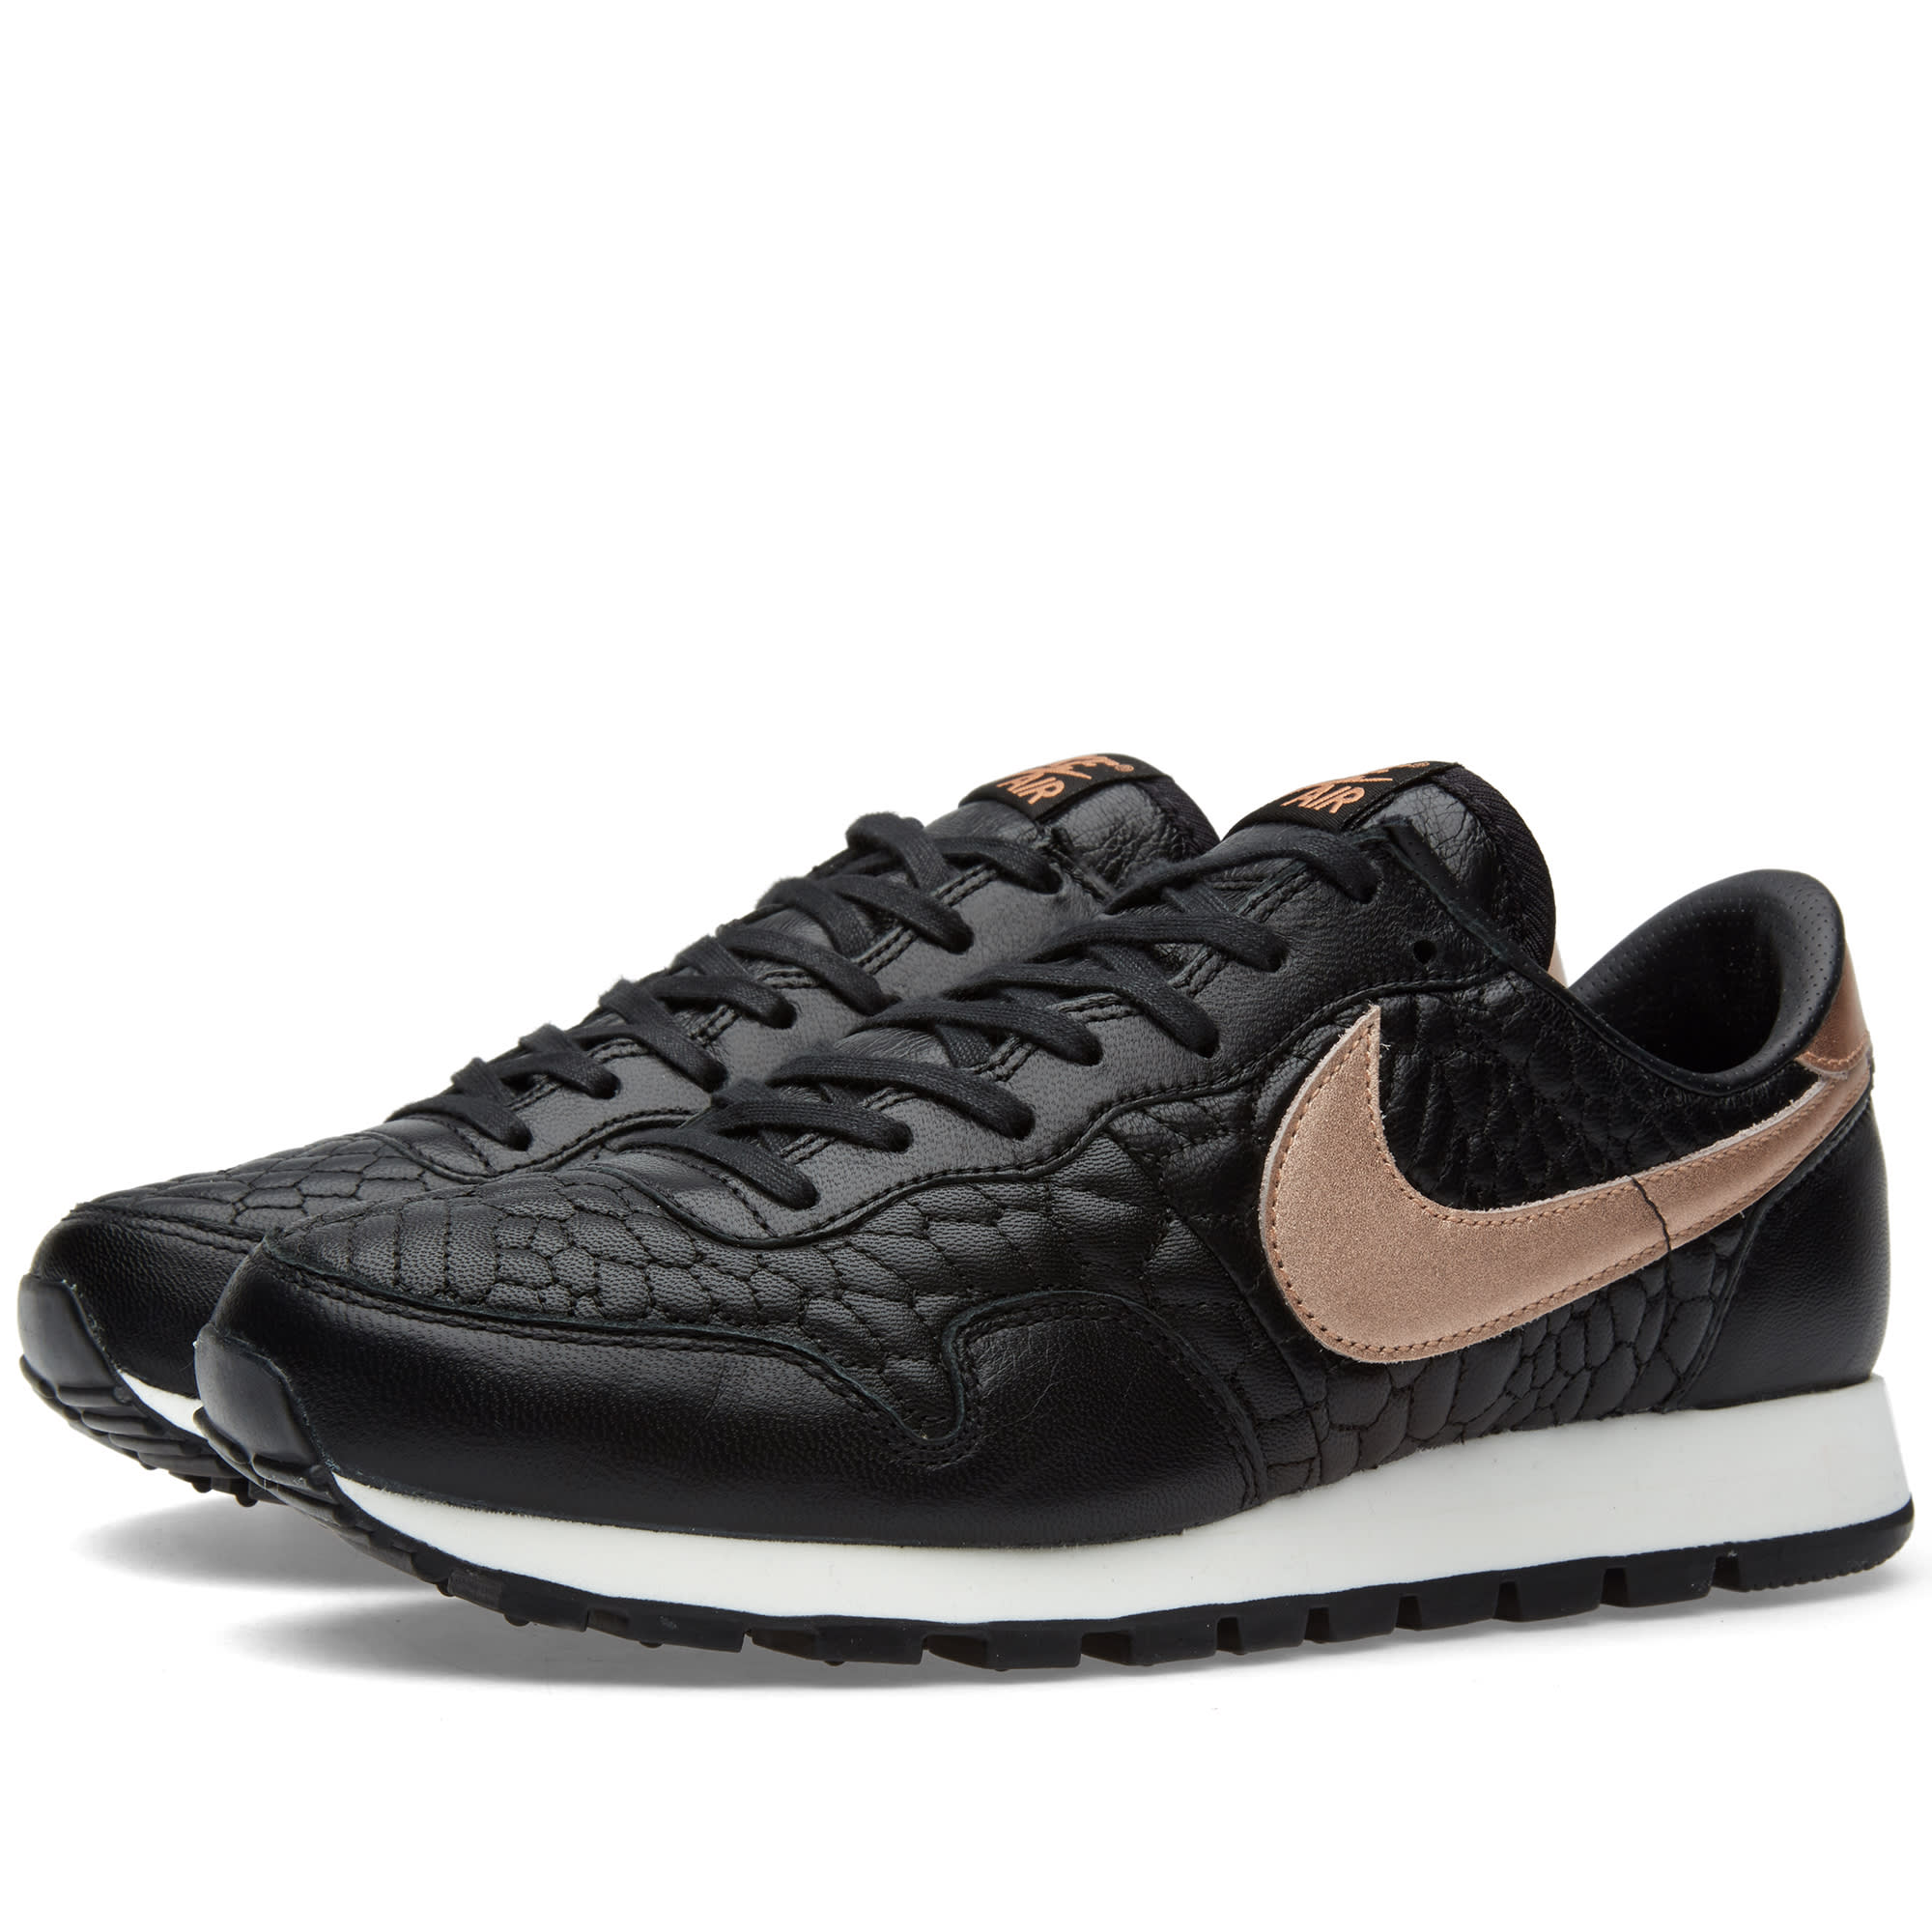 c12b3a3caad10 Amazon Nike Flyknit Racer Air Force 1 07 | Portal for Tenders